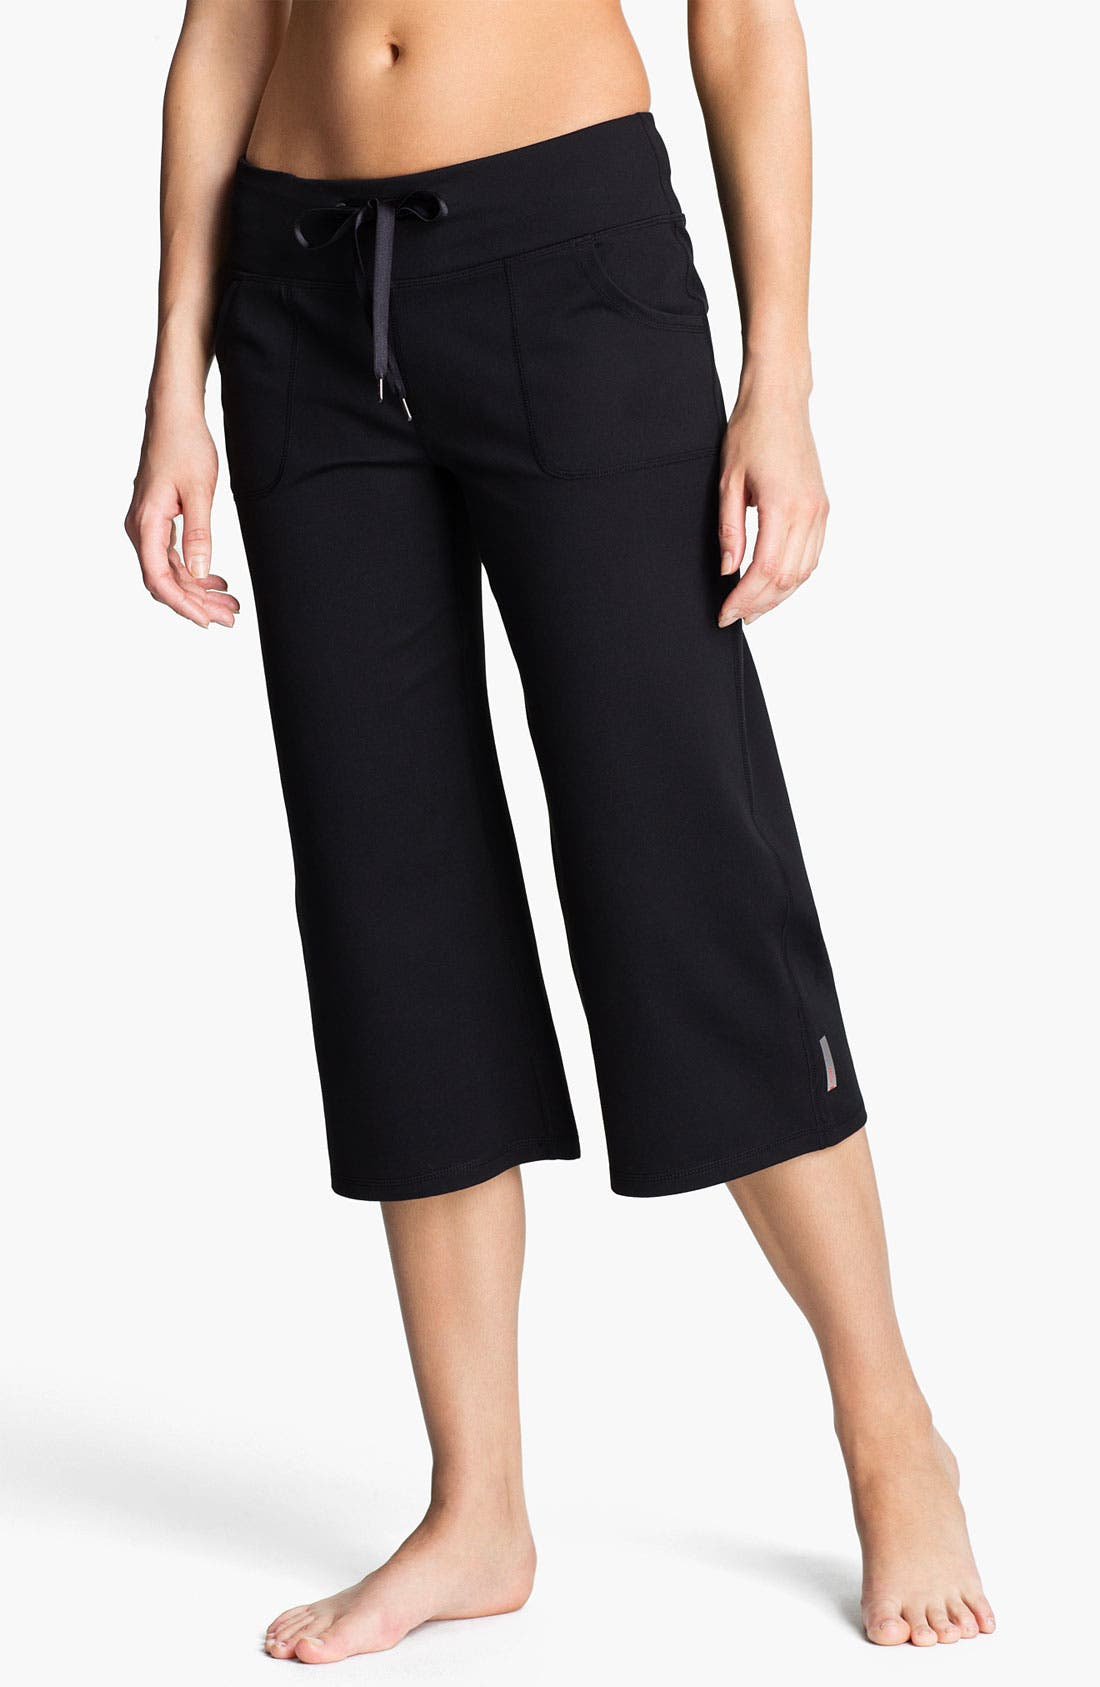 Alternate Image 1 Selected - Zella 'Soul 2' Capris (Online Only)